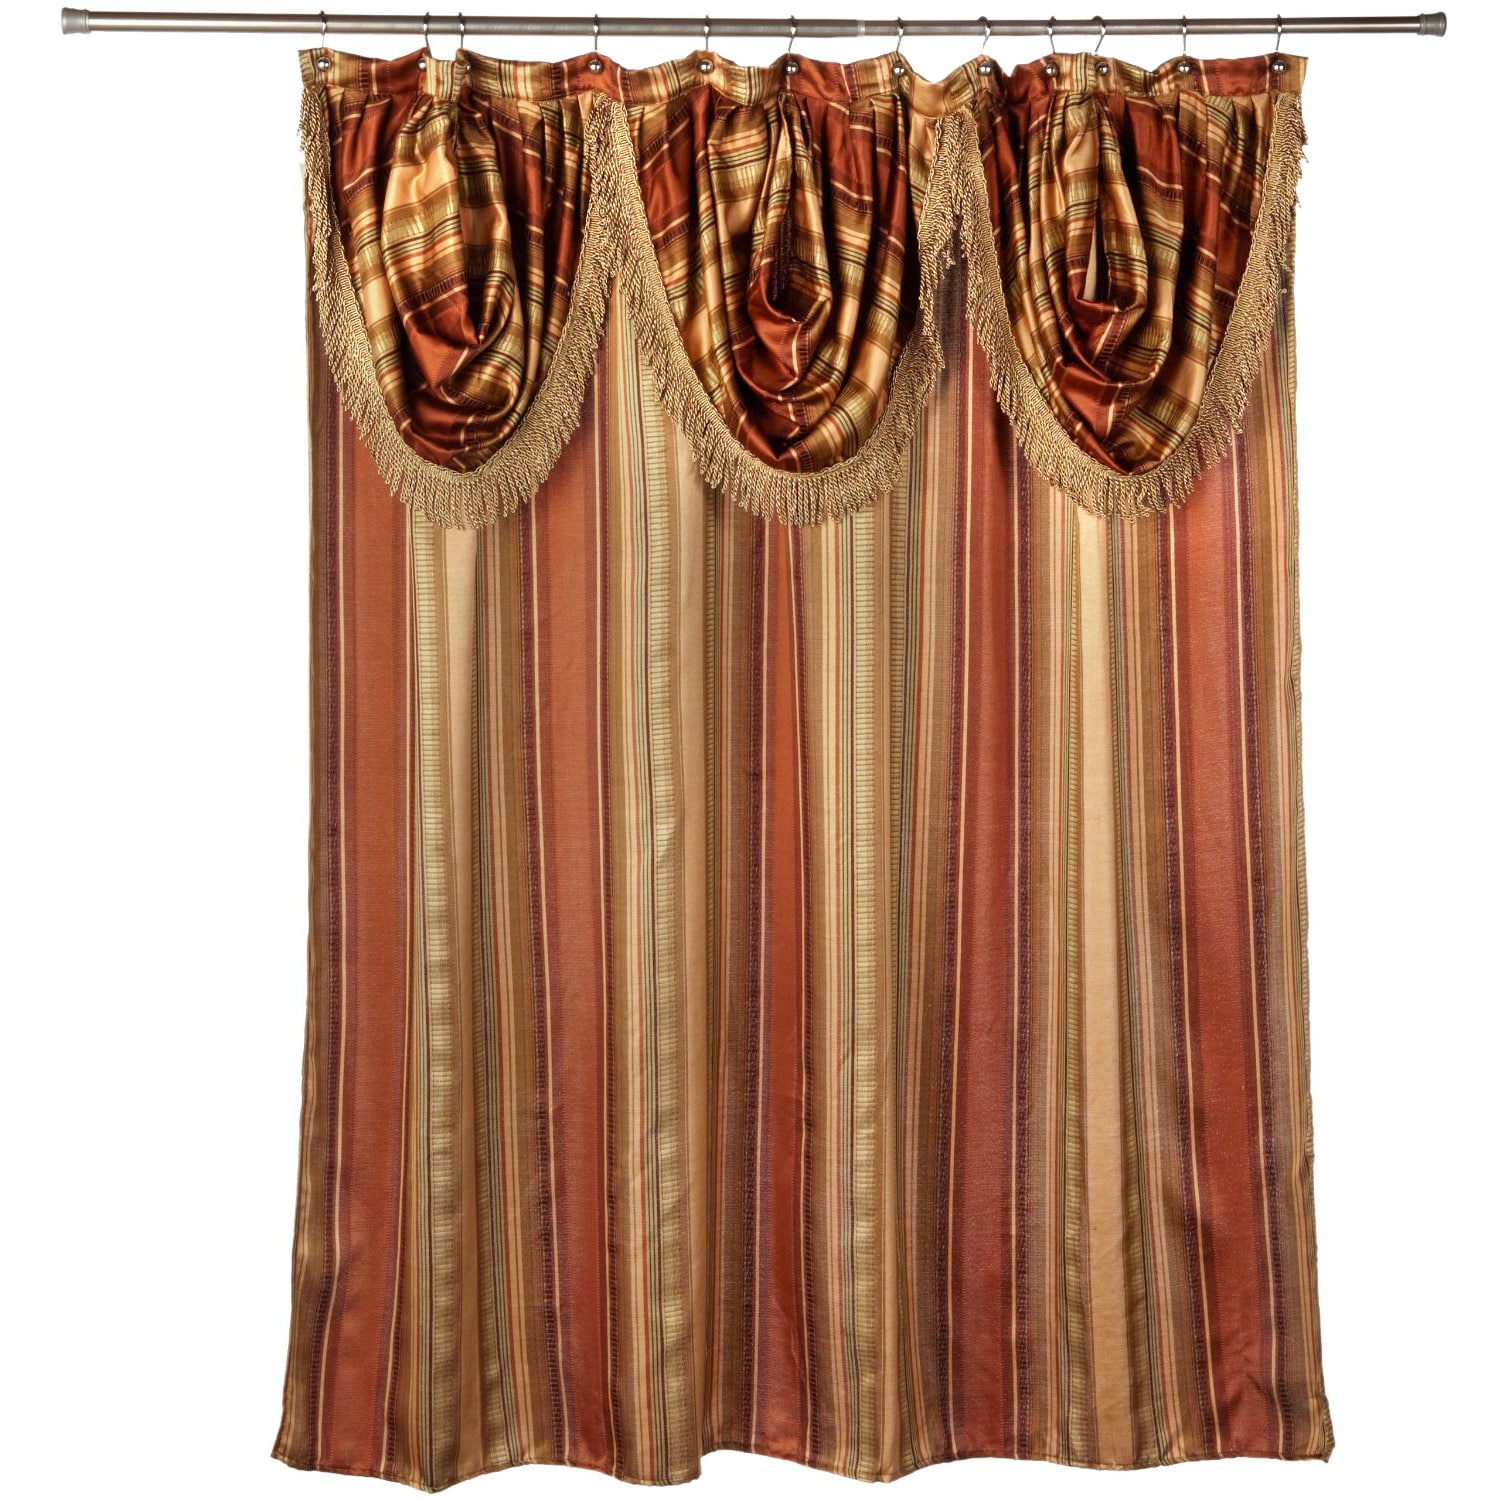 Ultra Modern Shower Curtain With Valance And Hooks Set Or Separates